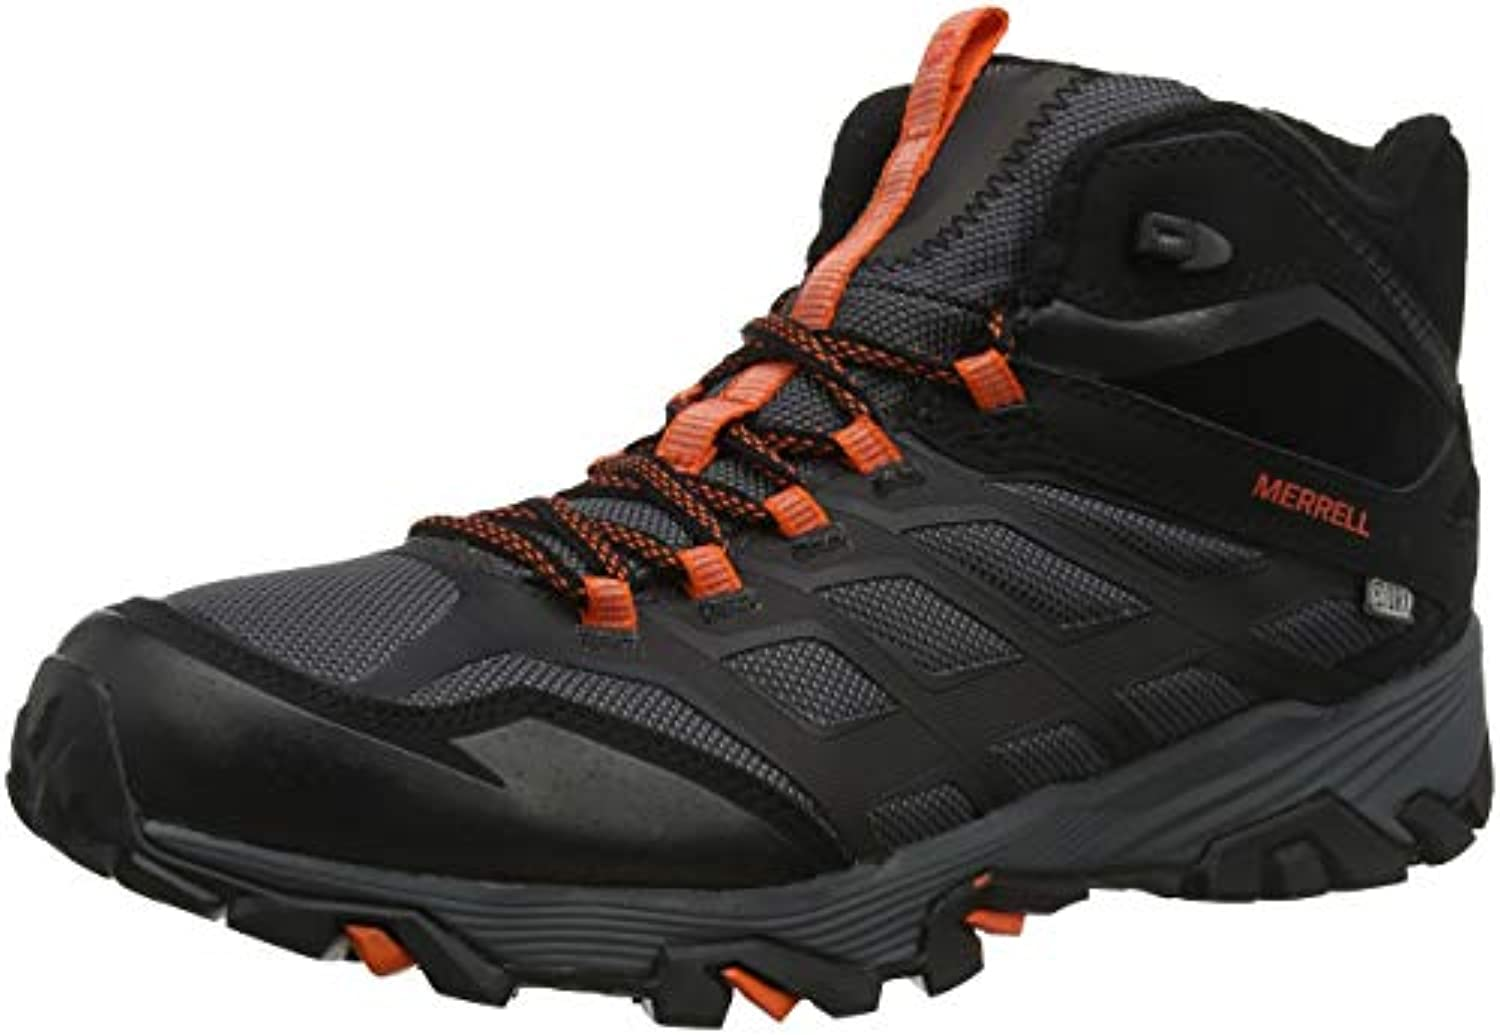 Merrell Moab FST Ice+ Thermo, Chaussures ée de Ran ée Chaussures Hautes Homme 124457